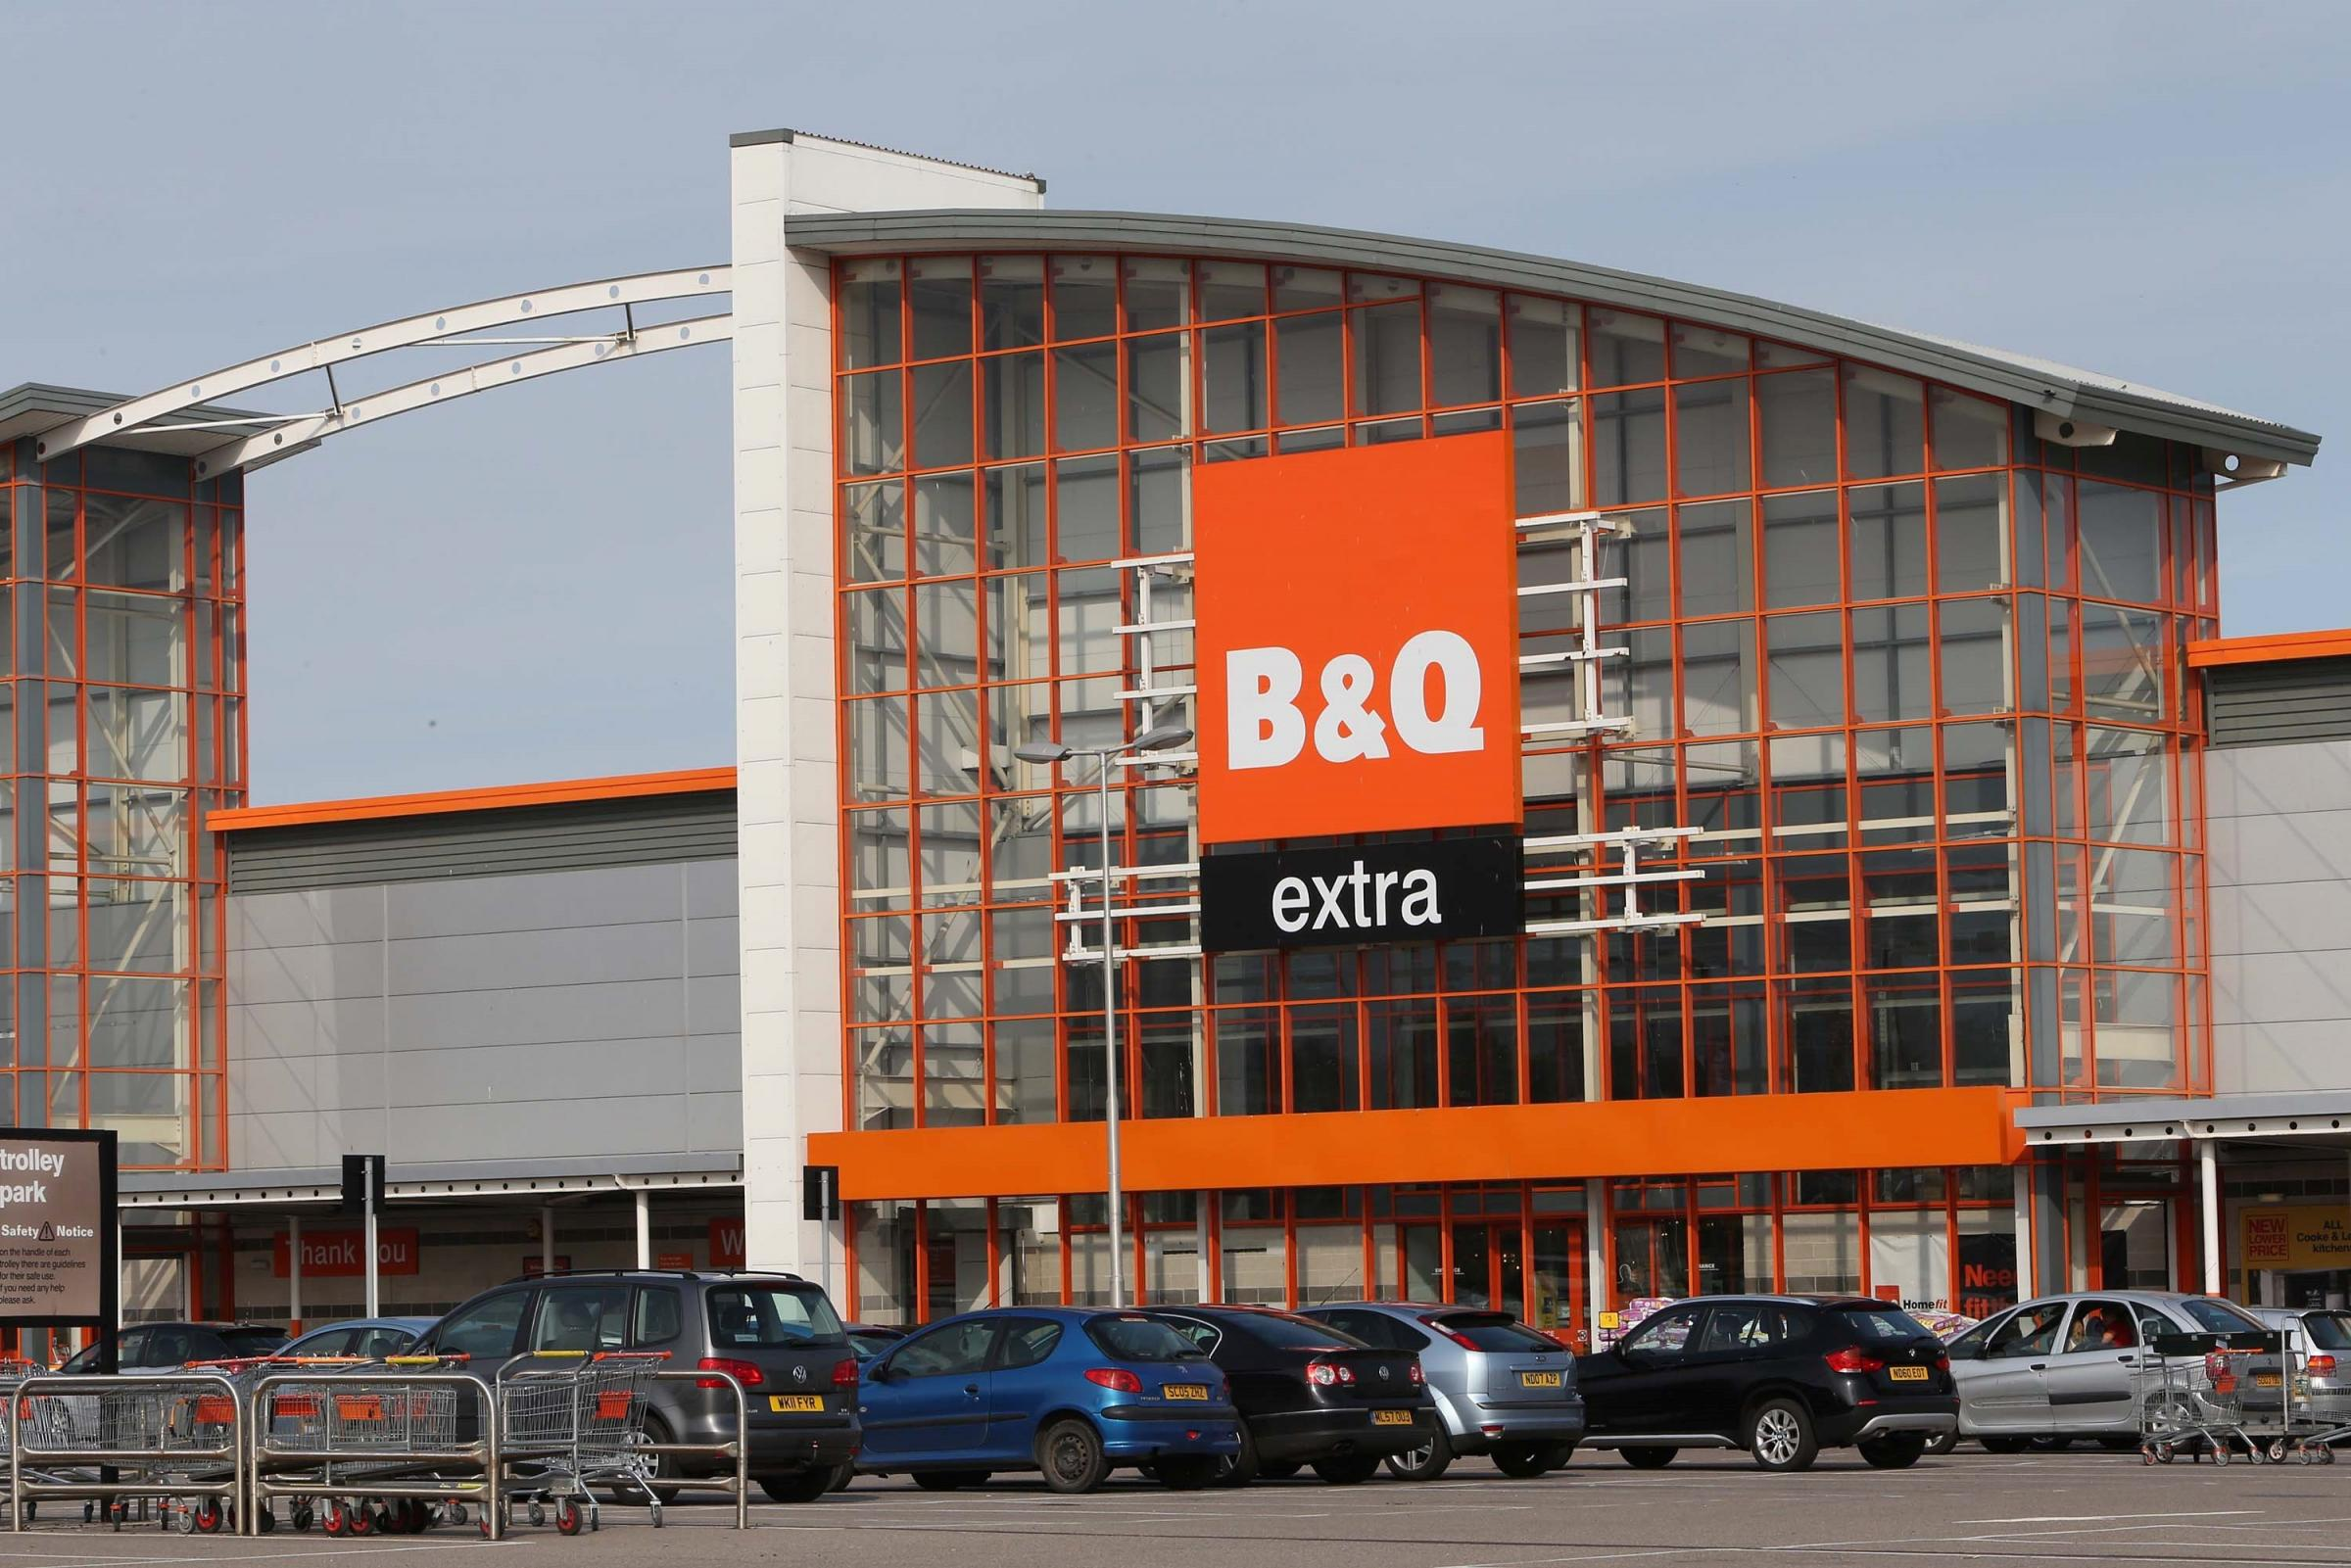 Go Outdoors Set To Create 50 Jobs At Store On Durham City Retail Park The Northern Echo